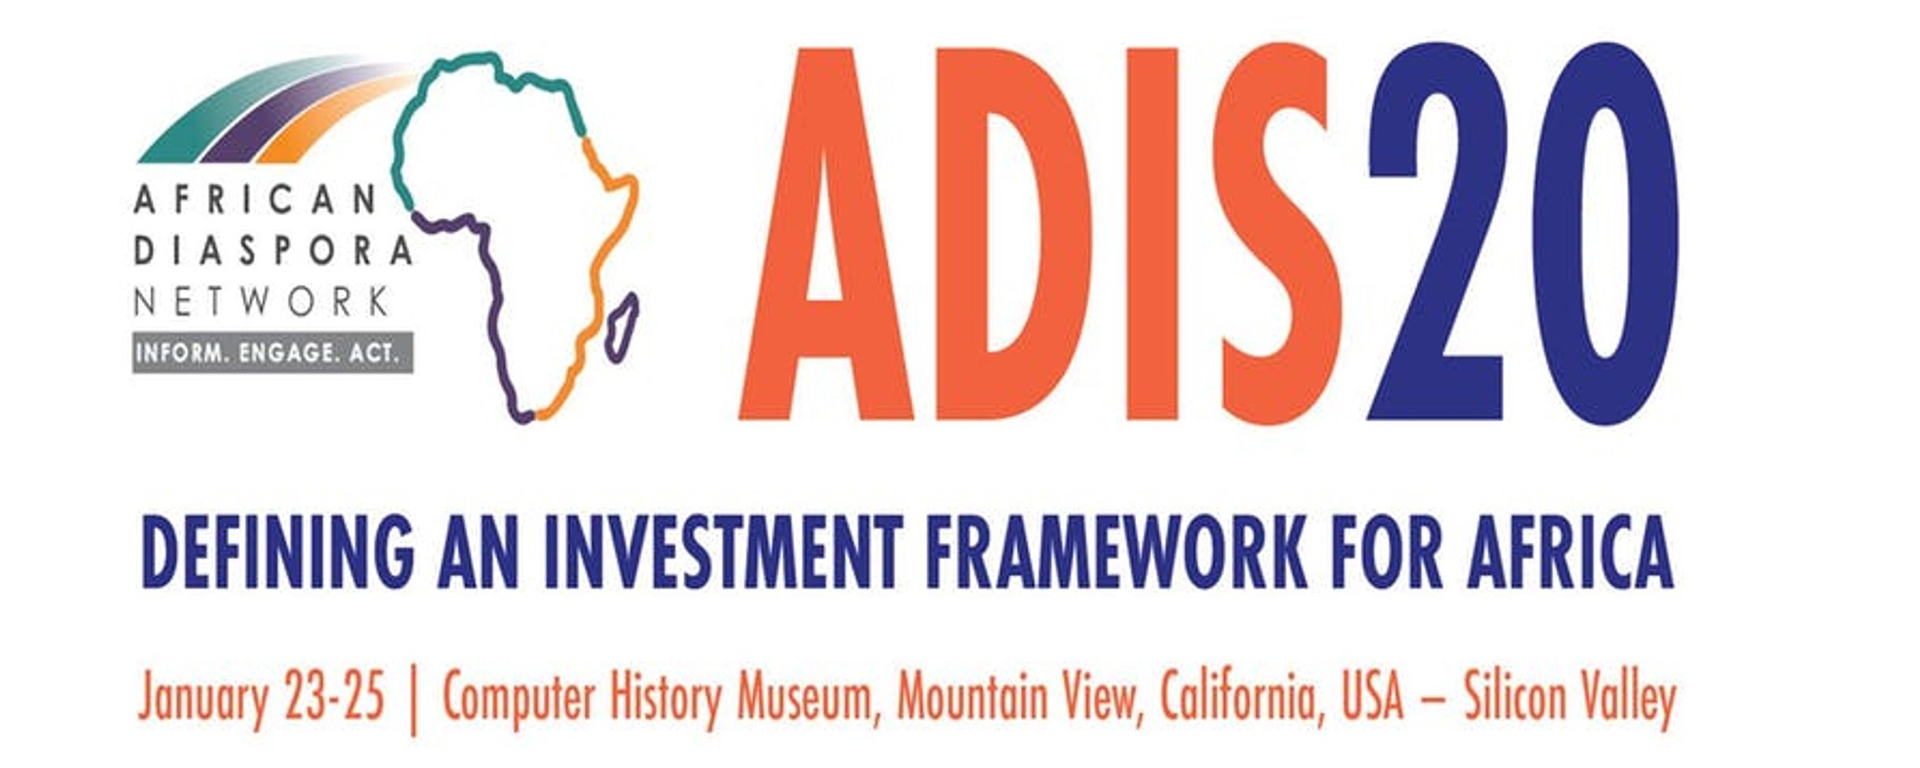 African Diaspora Network - ADIS 2020 - Defining an Investment Framework for Africa Movemeback African event cover image